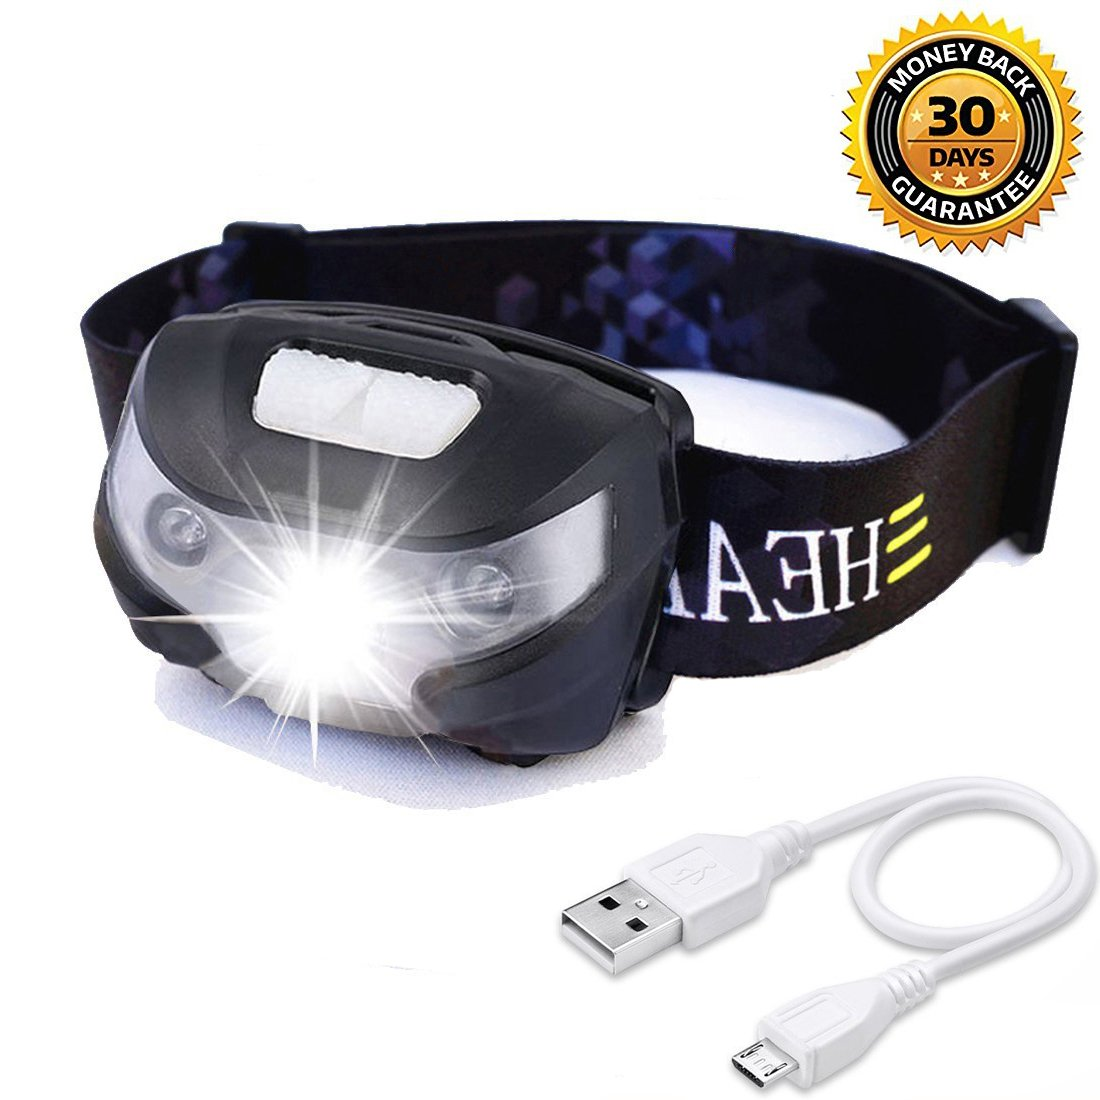 HFAN USB Rechargeable LED Headlamp, Headlight 1X White, 2X Red Super Bright, Waterproof, Lightweight Headlamps with SOS for Running, Walking, Camping, Reading, Hiking, Outdoor Sports etc